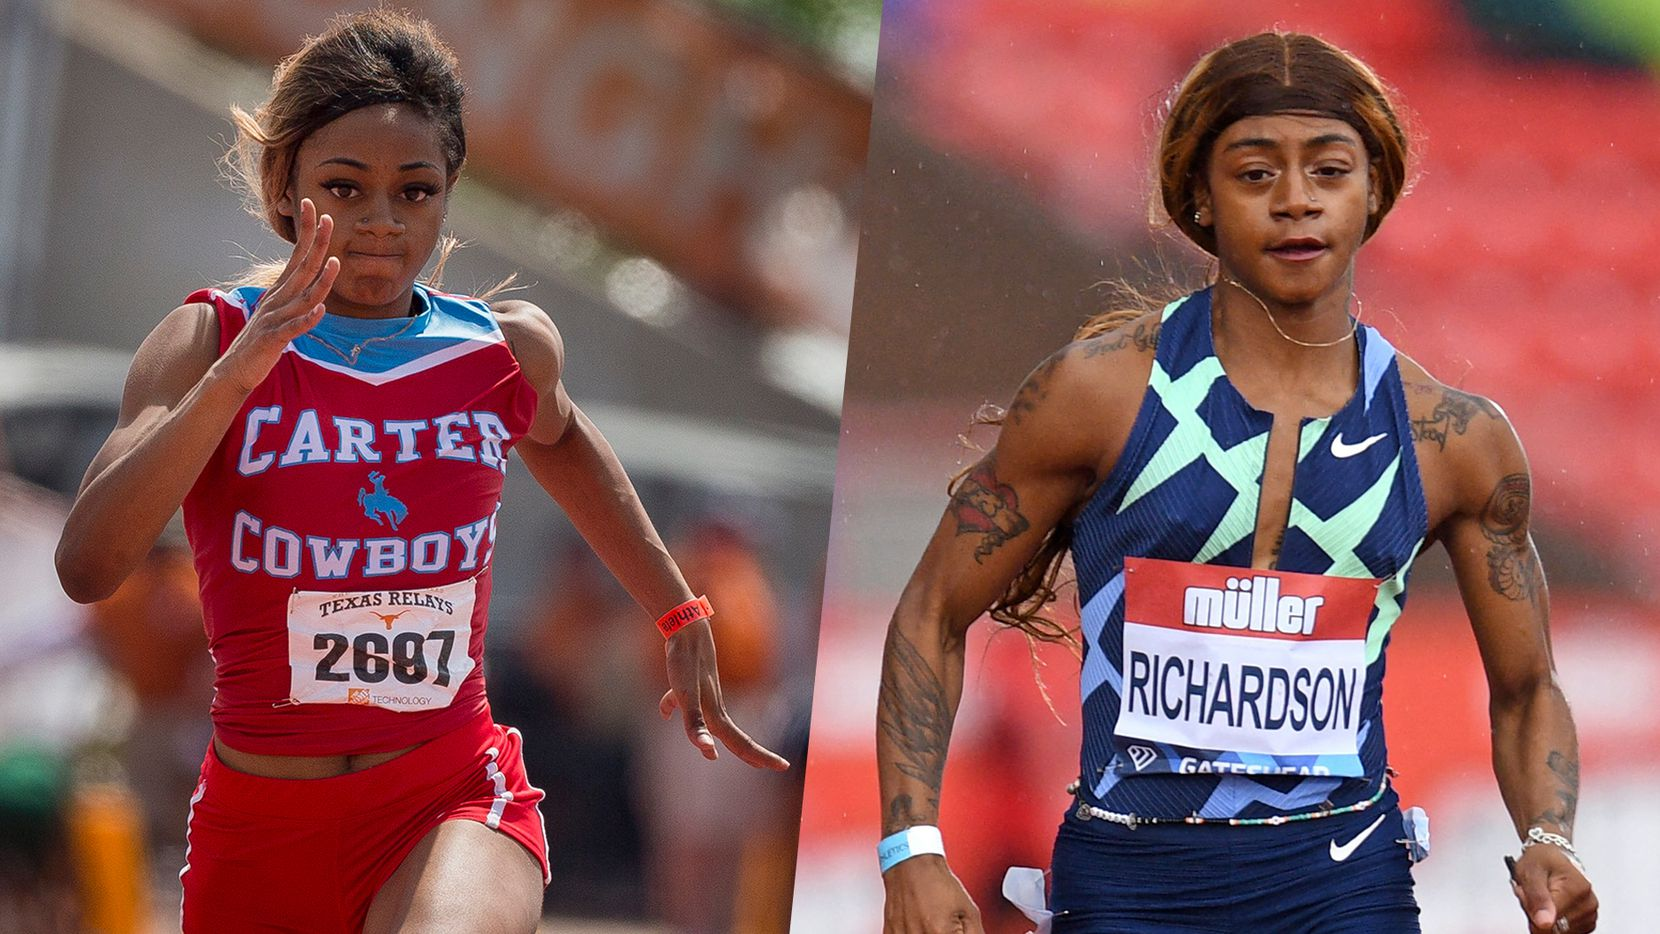 Sha'Carri Richardson with Carter HS in 2018 (left) and at the Diamond League athletics meet in 2021.